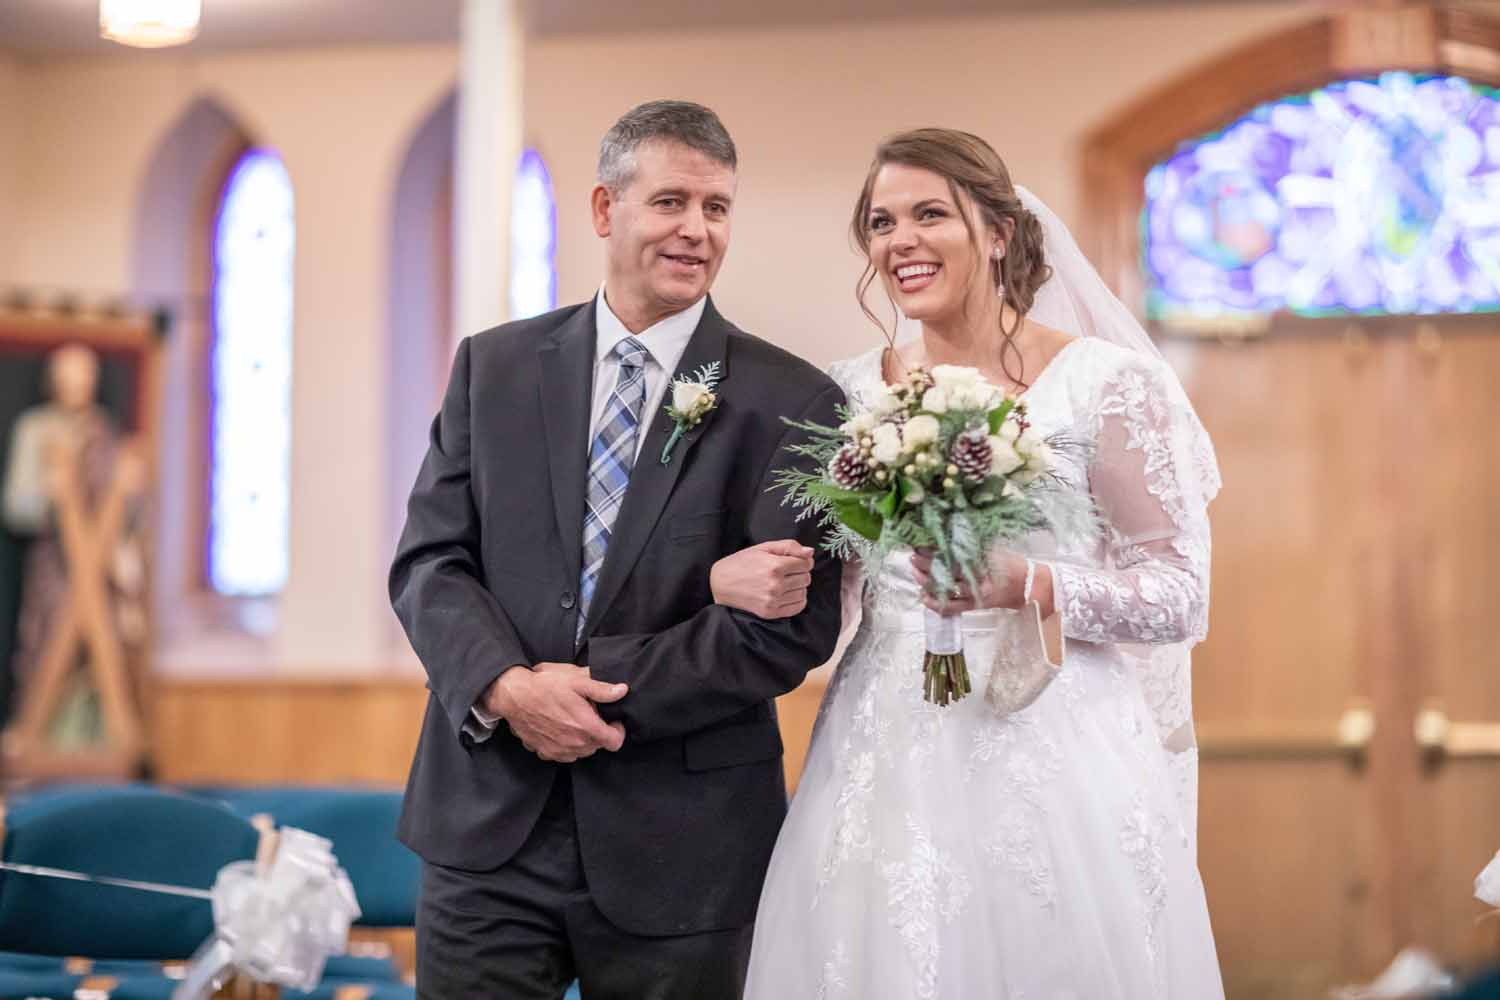 Bride and father walk down aisle together